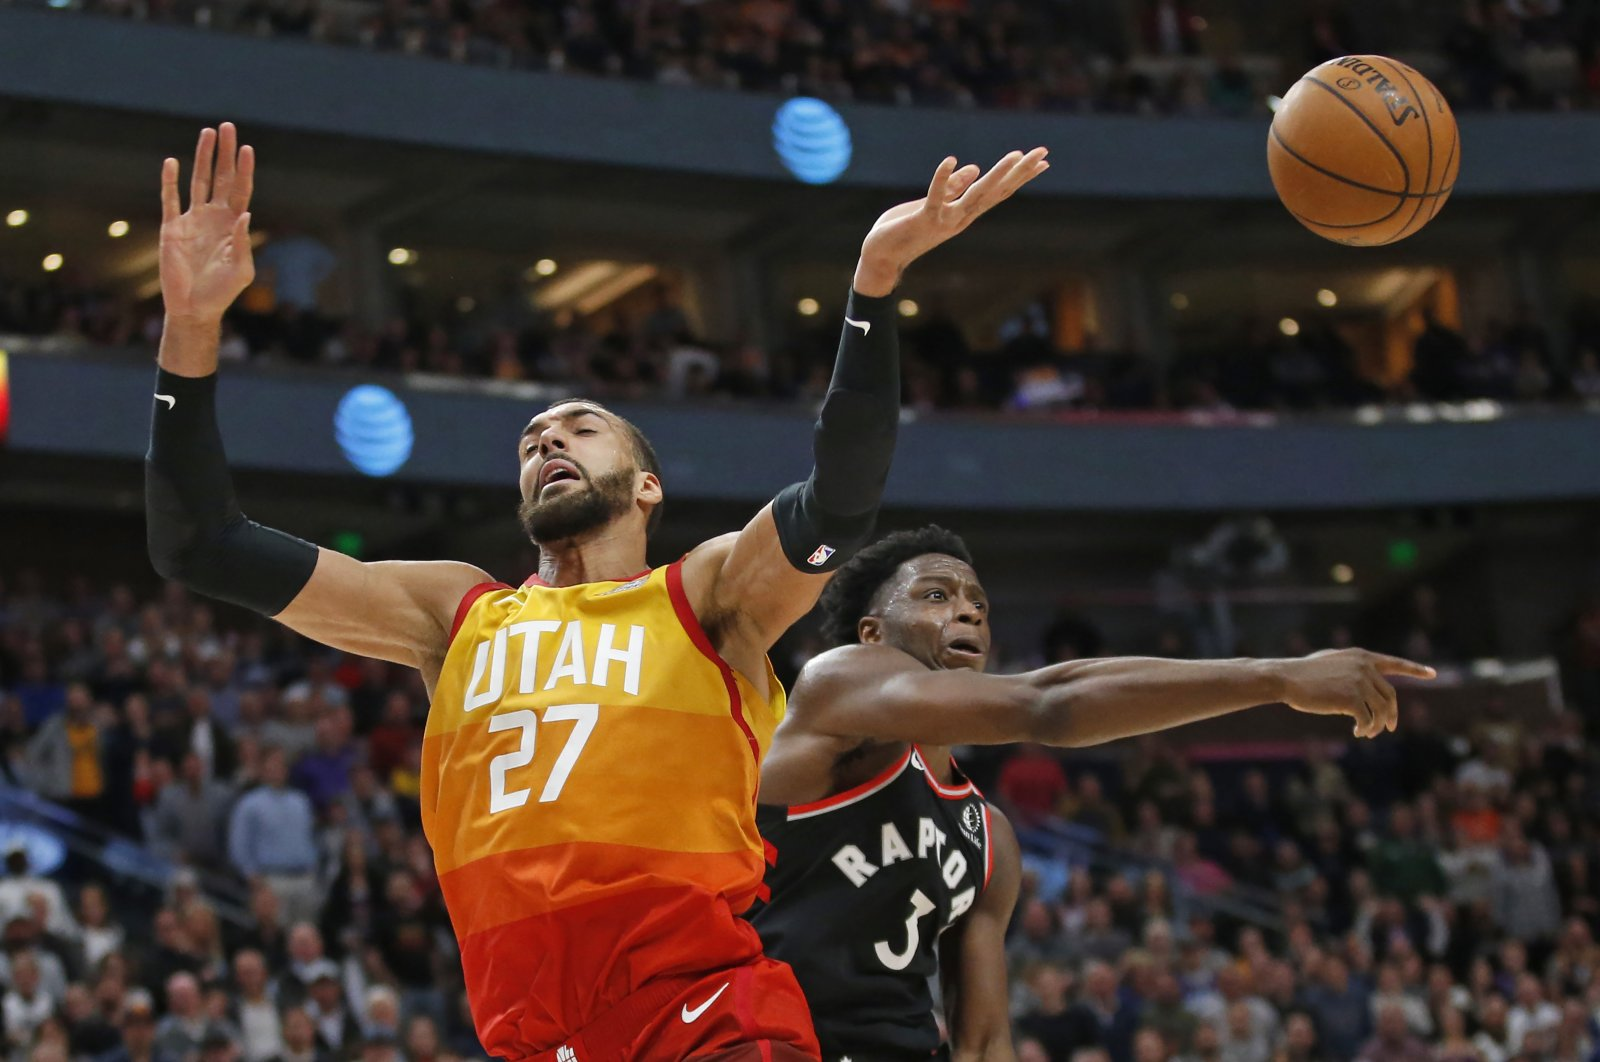 Toronto Raptors forward OG Anunoby (3) knocks the ball from Utah Jazz center Rudy Gobert (27) as he drives to the basket in the second half during an NBA basketball game, Salt Lake City, March 9, 2020. (AP Photo)